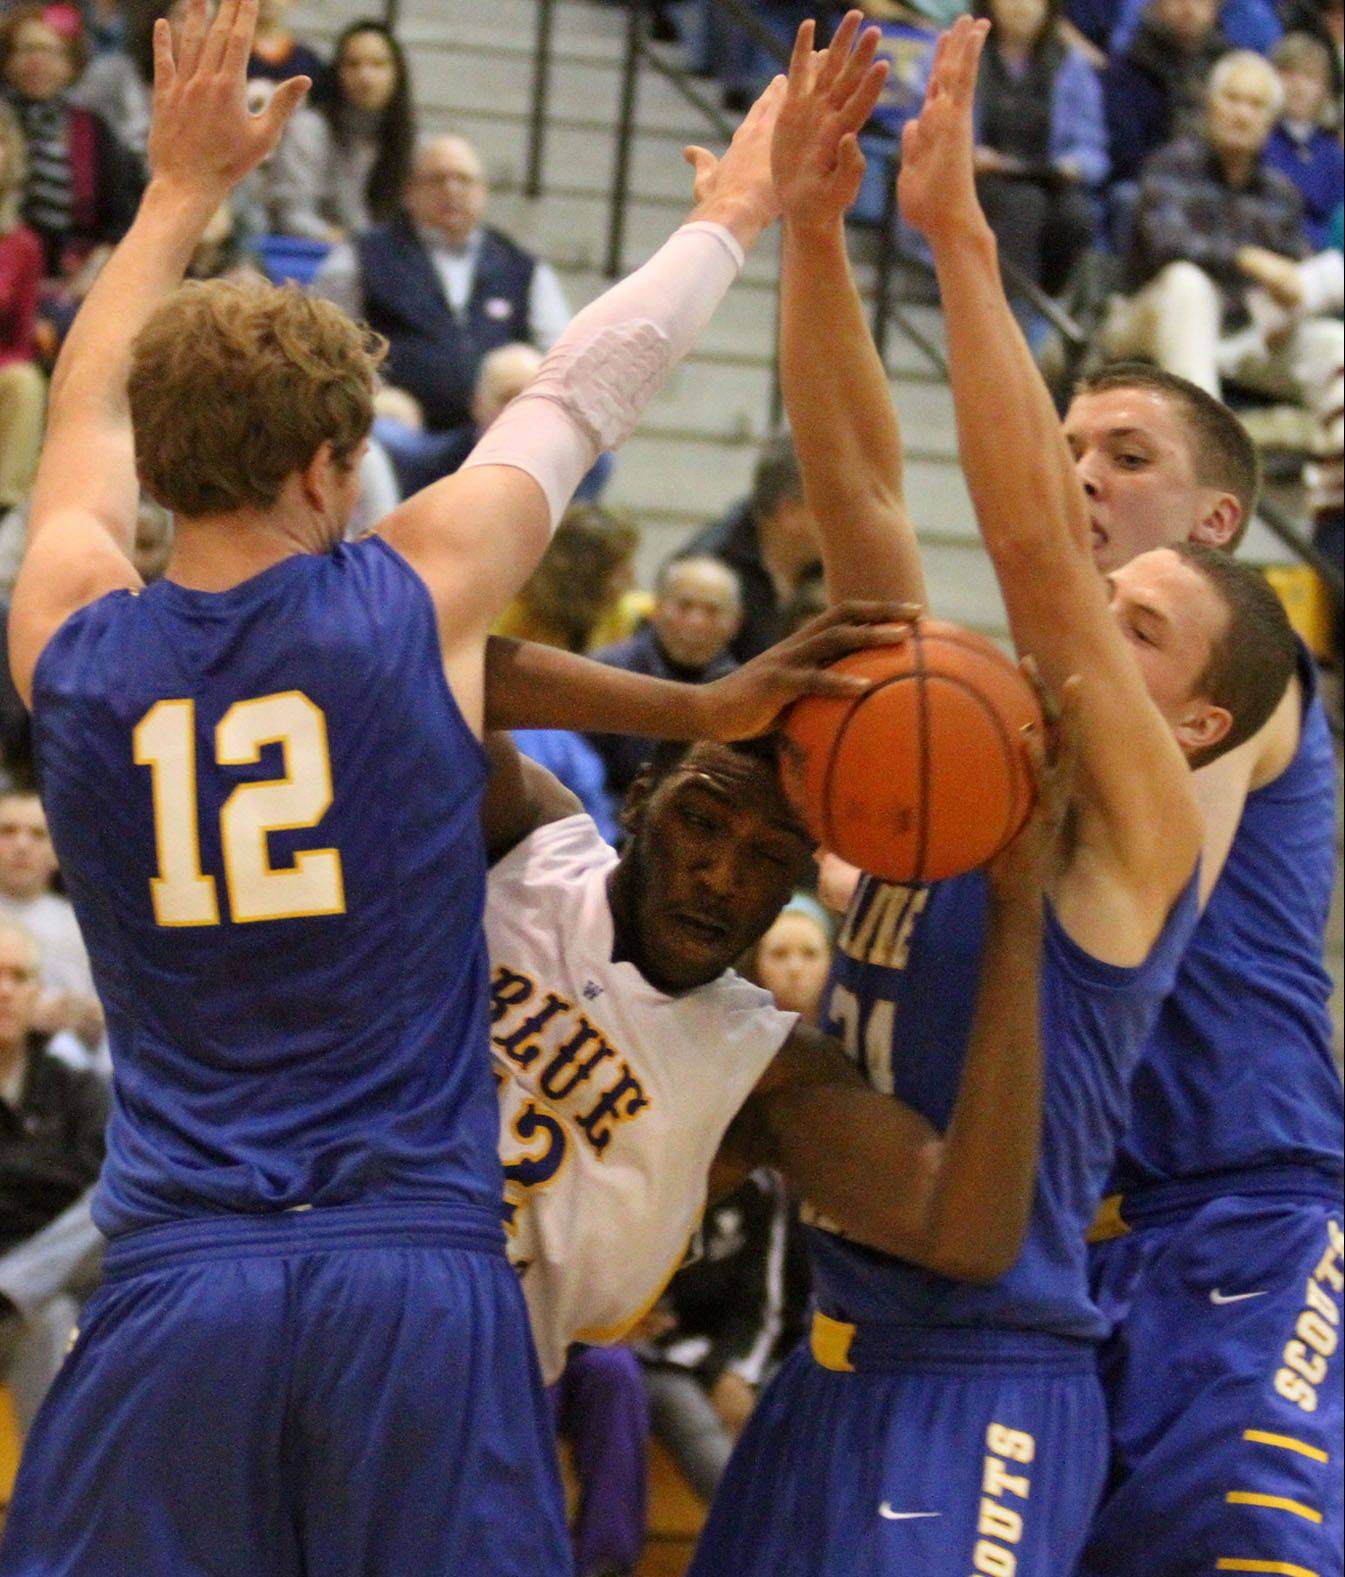 Warren's Dre' Von Hill is boxed in by three Lake Forest defenders, including Evan Boudreaux, left, in Gurnee on Friday.